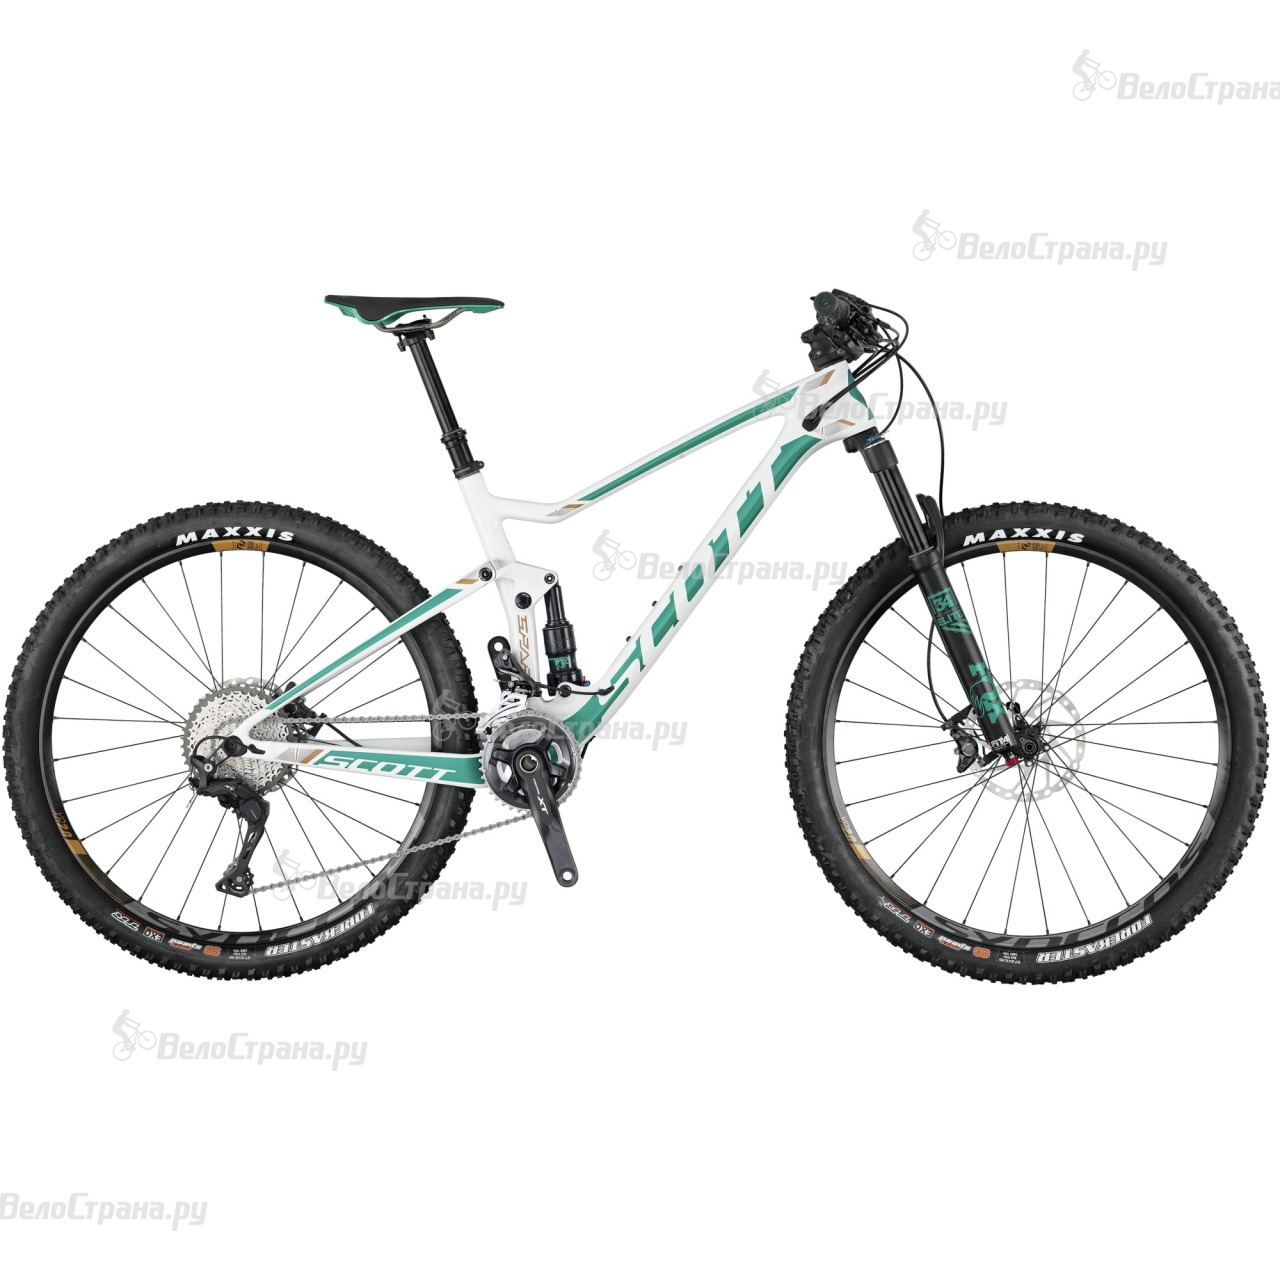 Велосипед Scott Contessa Spark 700 (2017)  велосипед scott contessa spark 700 rc 2016